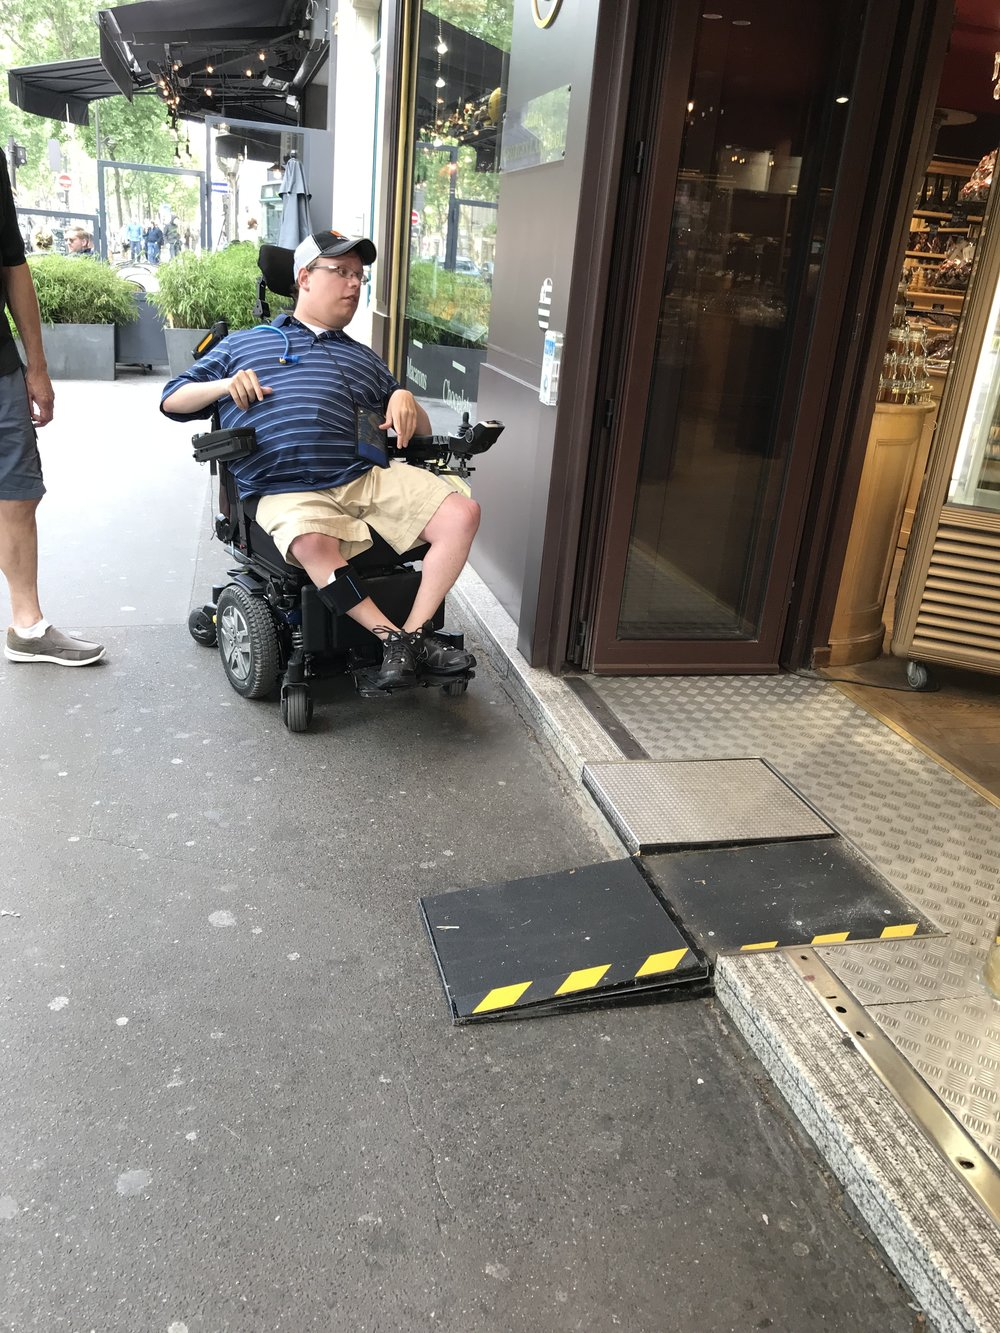 PHOTO: Matthew still sitting in his wheelchair in a blue shirt and cap outside a store in Paris, France.  Now he is looking at a black ramp to help him get in the store.